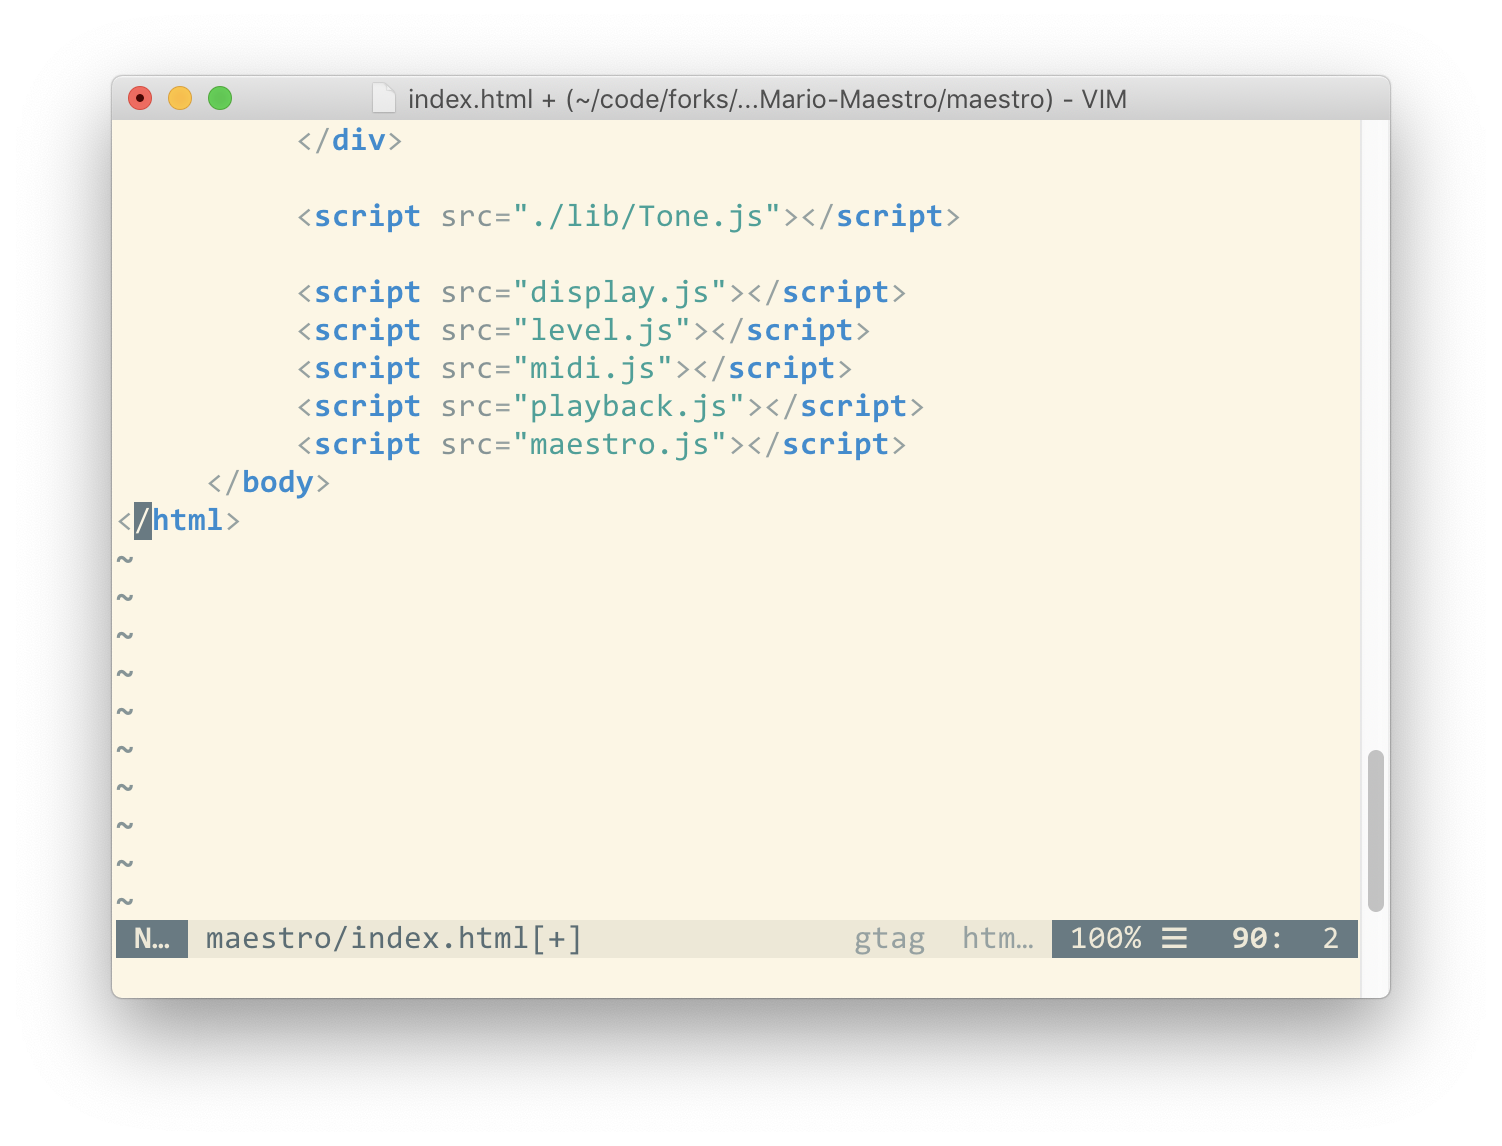 example of scroll bar in MacVim - near bottom of scrollable view